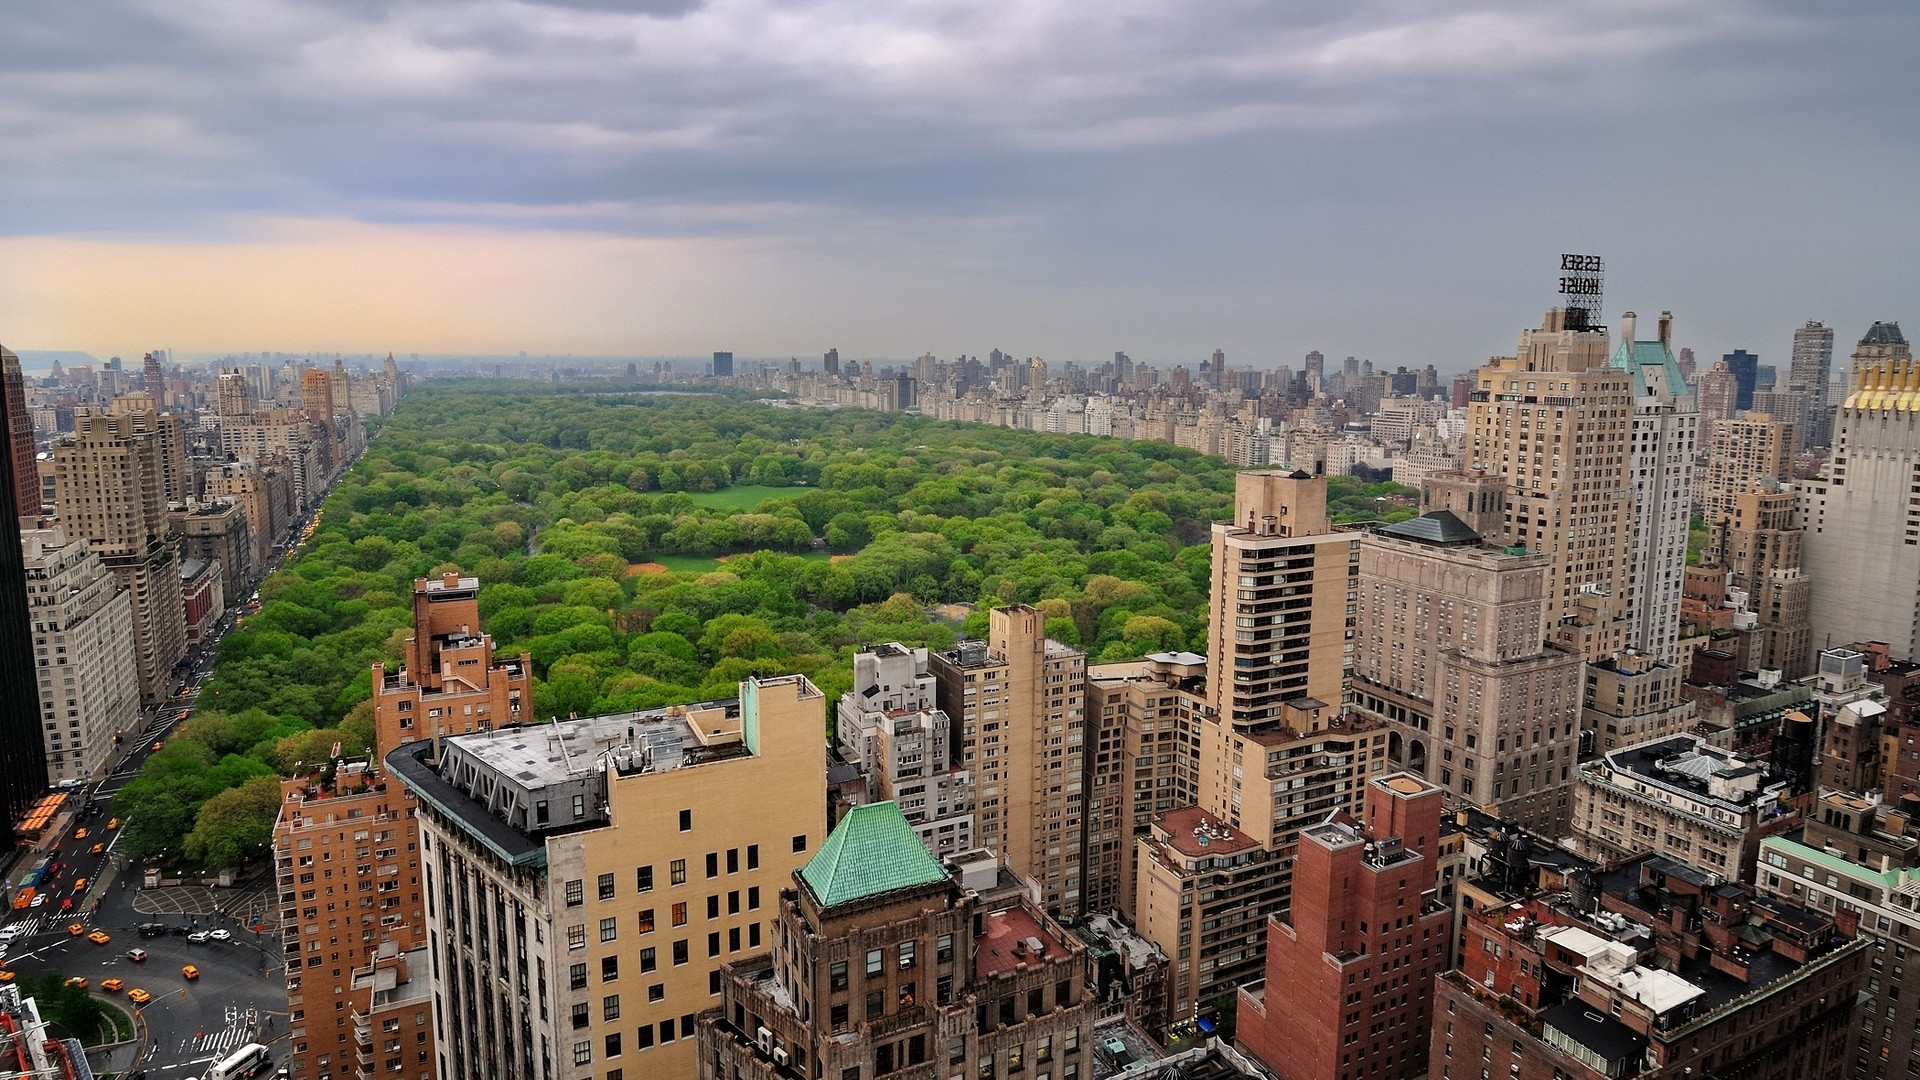 New York world architecture buildings skyscrapers park trees forest urban sky clouds scenic